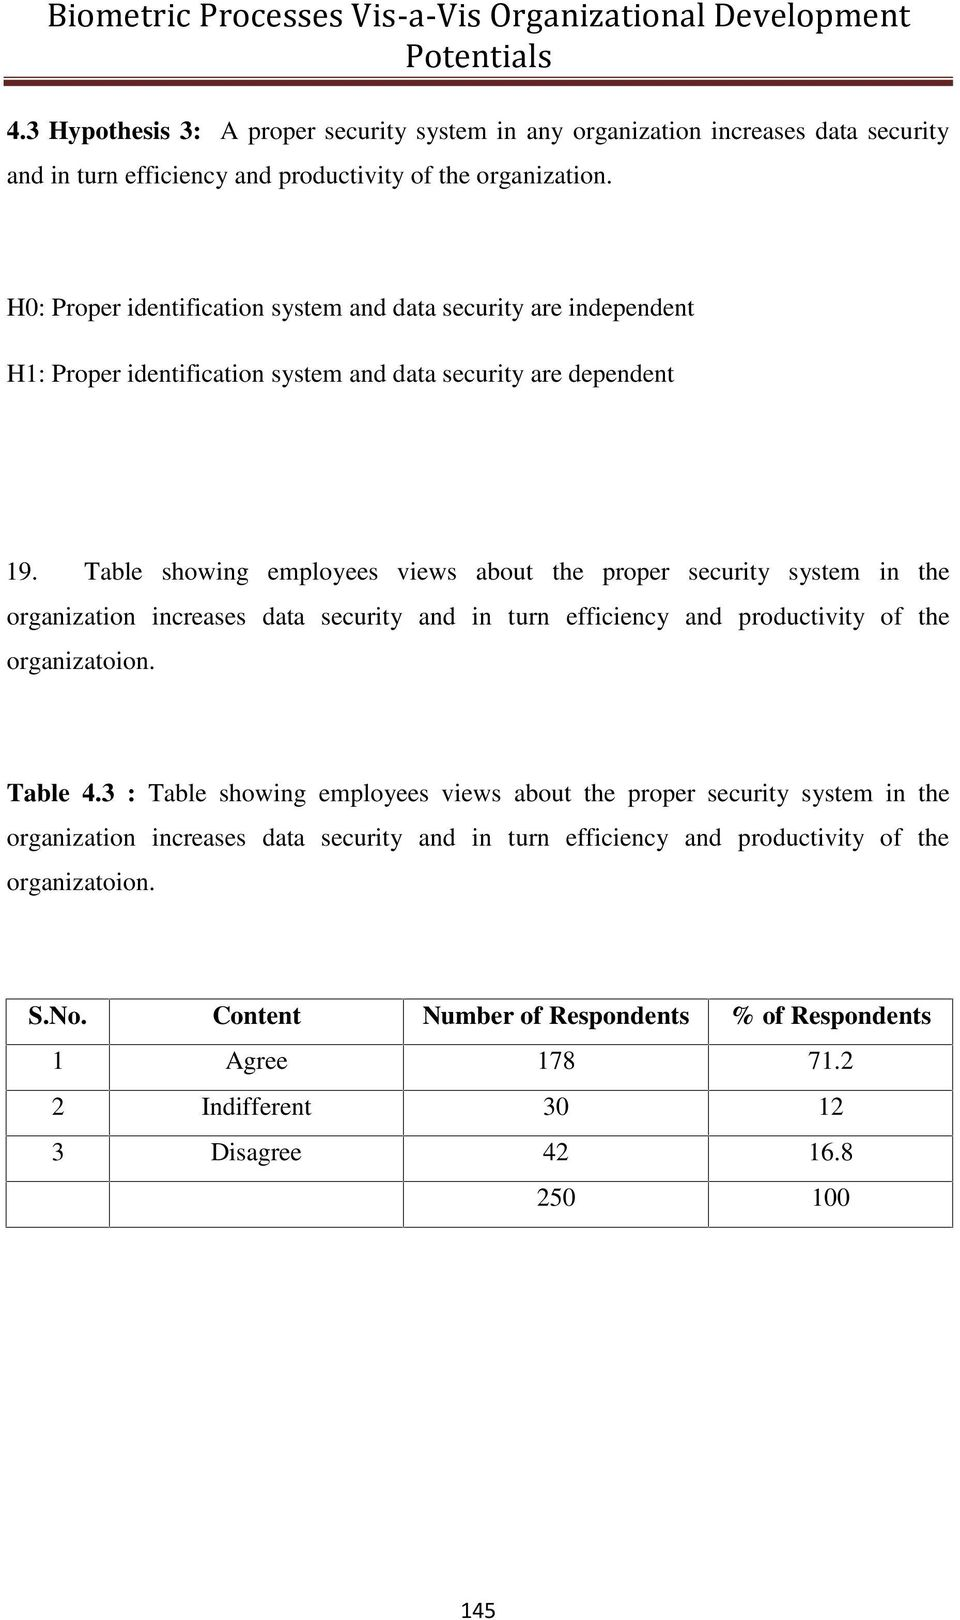 Table showing employees views about the proper security system in the organization increases data security and in turn efficiency and productivity of the organizatoion. Table 4.